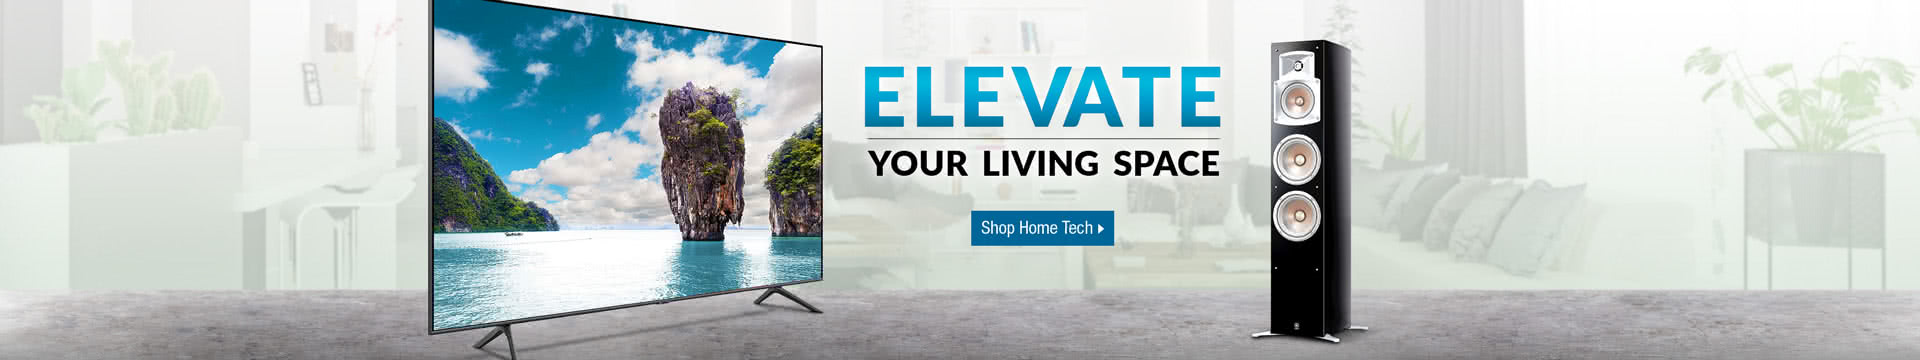 Elevate Your Living Space